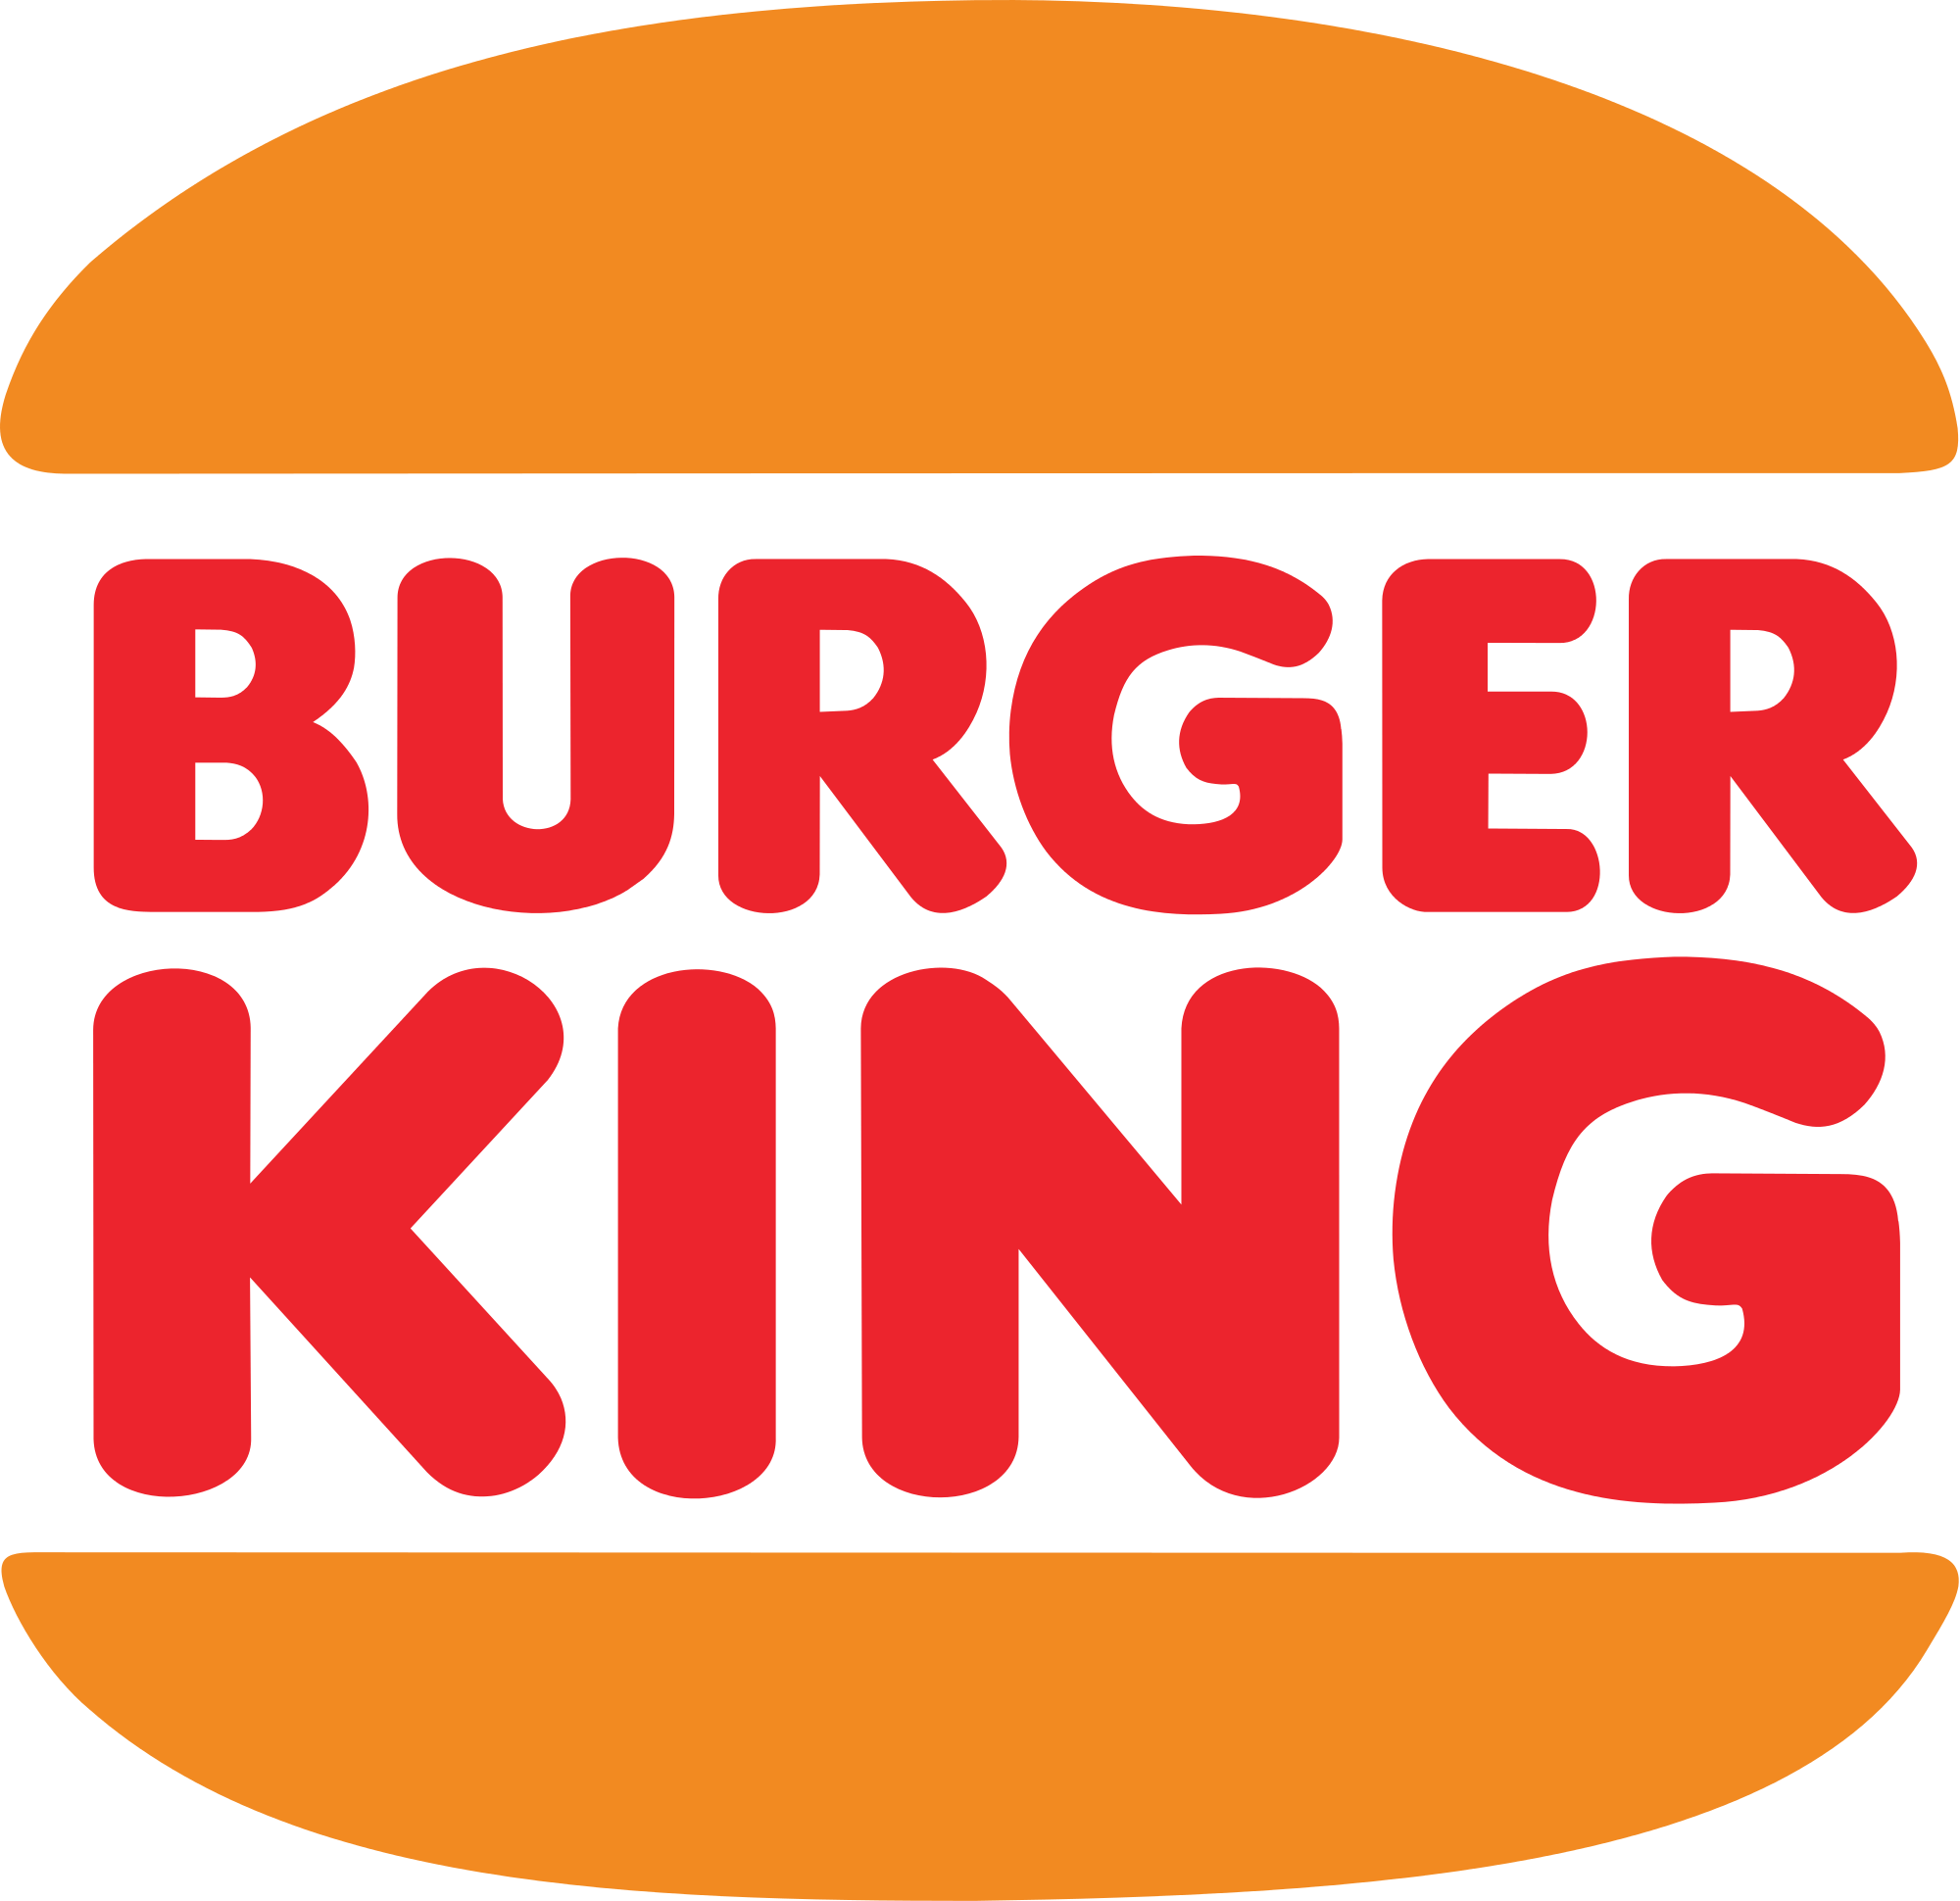 Burger King Logo - File:Burger King logo (1994).svg - Wikimedia Commons